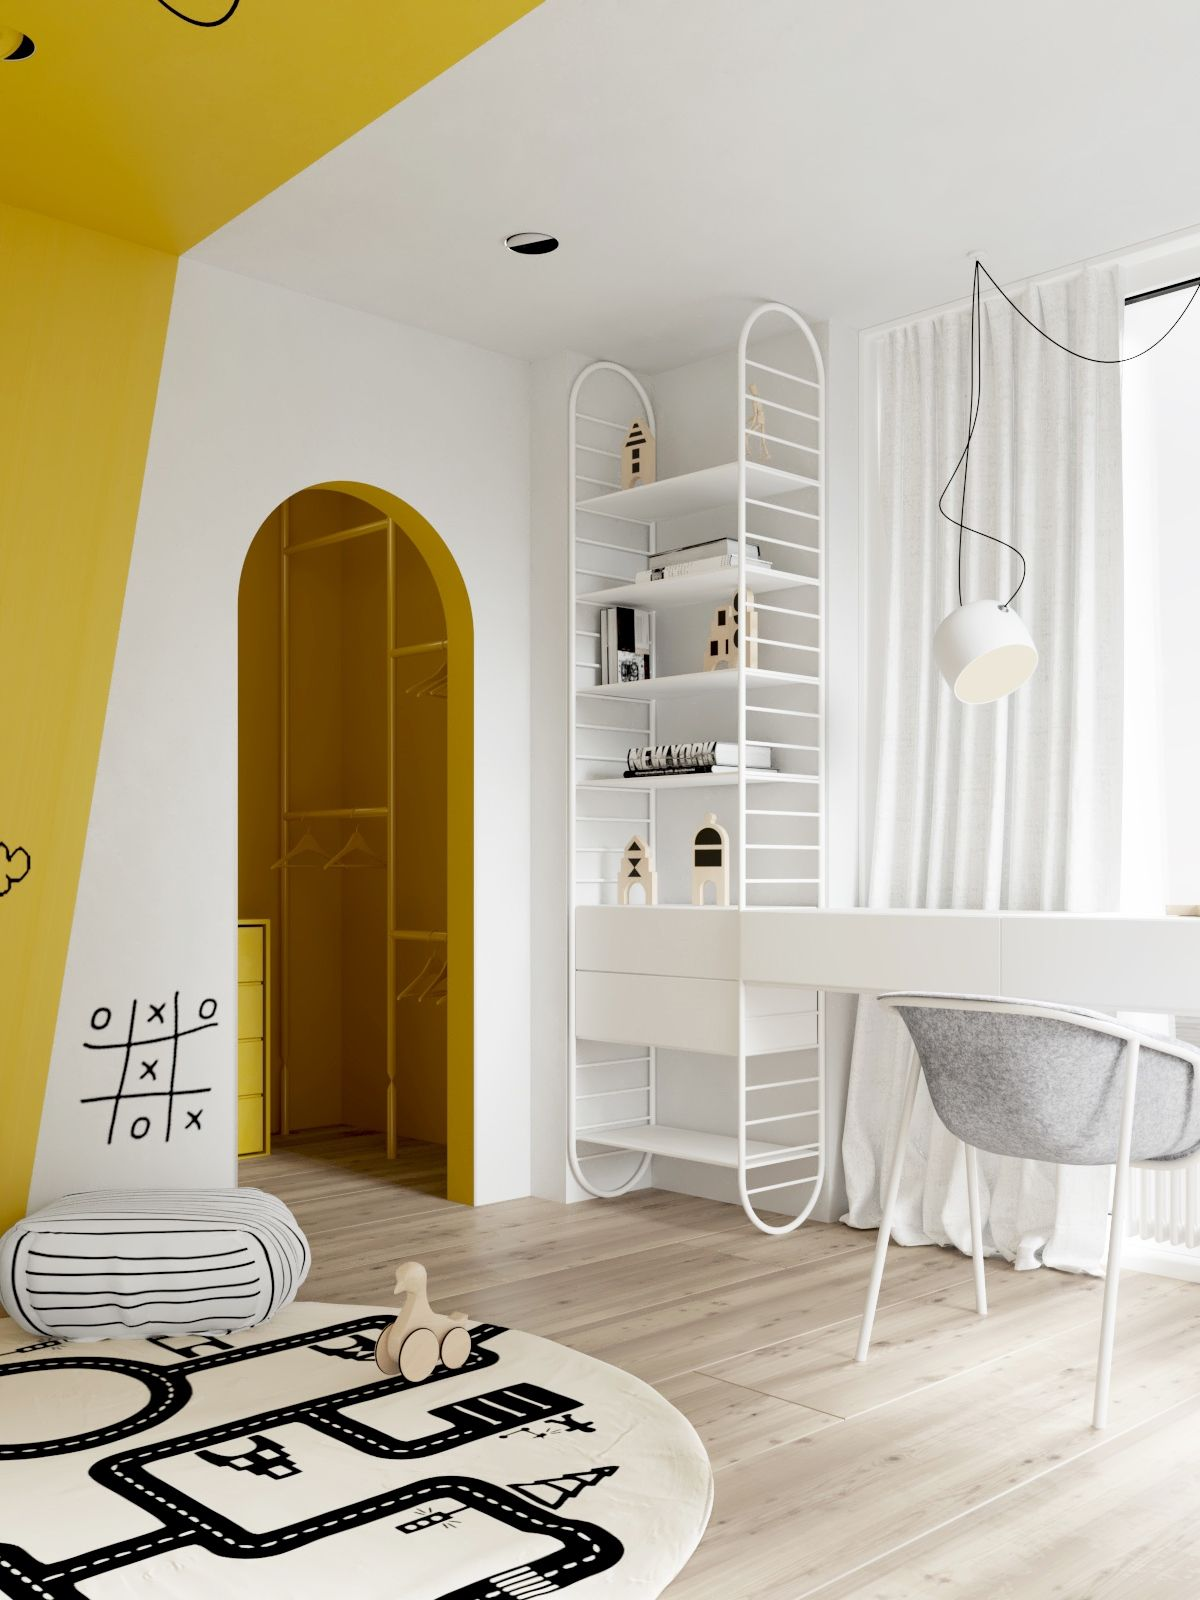 Colorful and Playful Shelves for Children